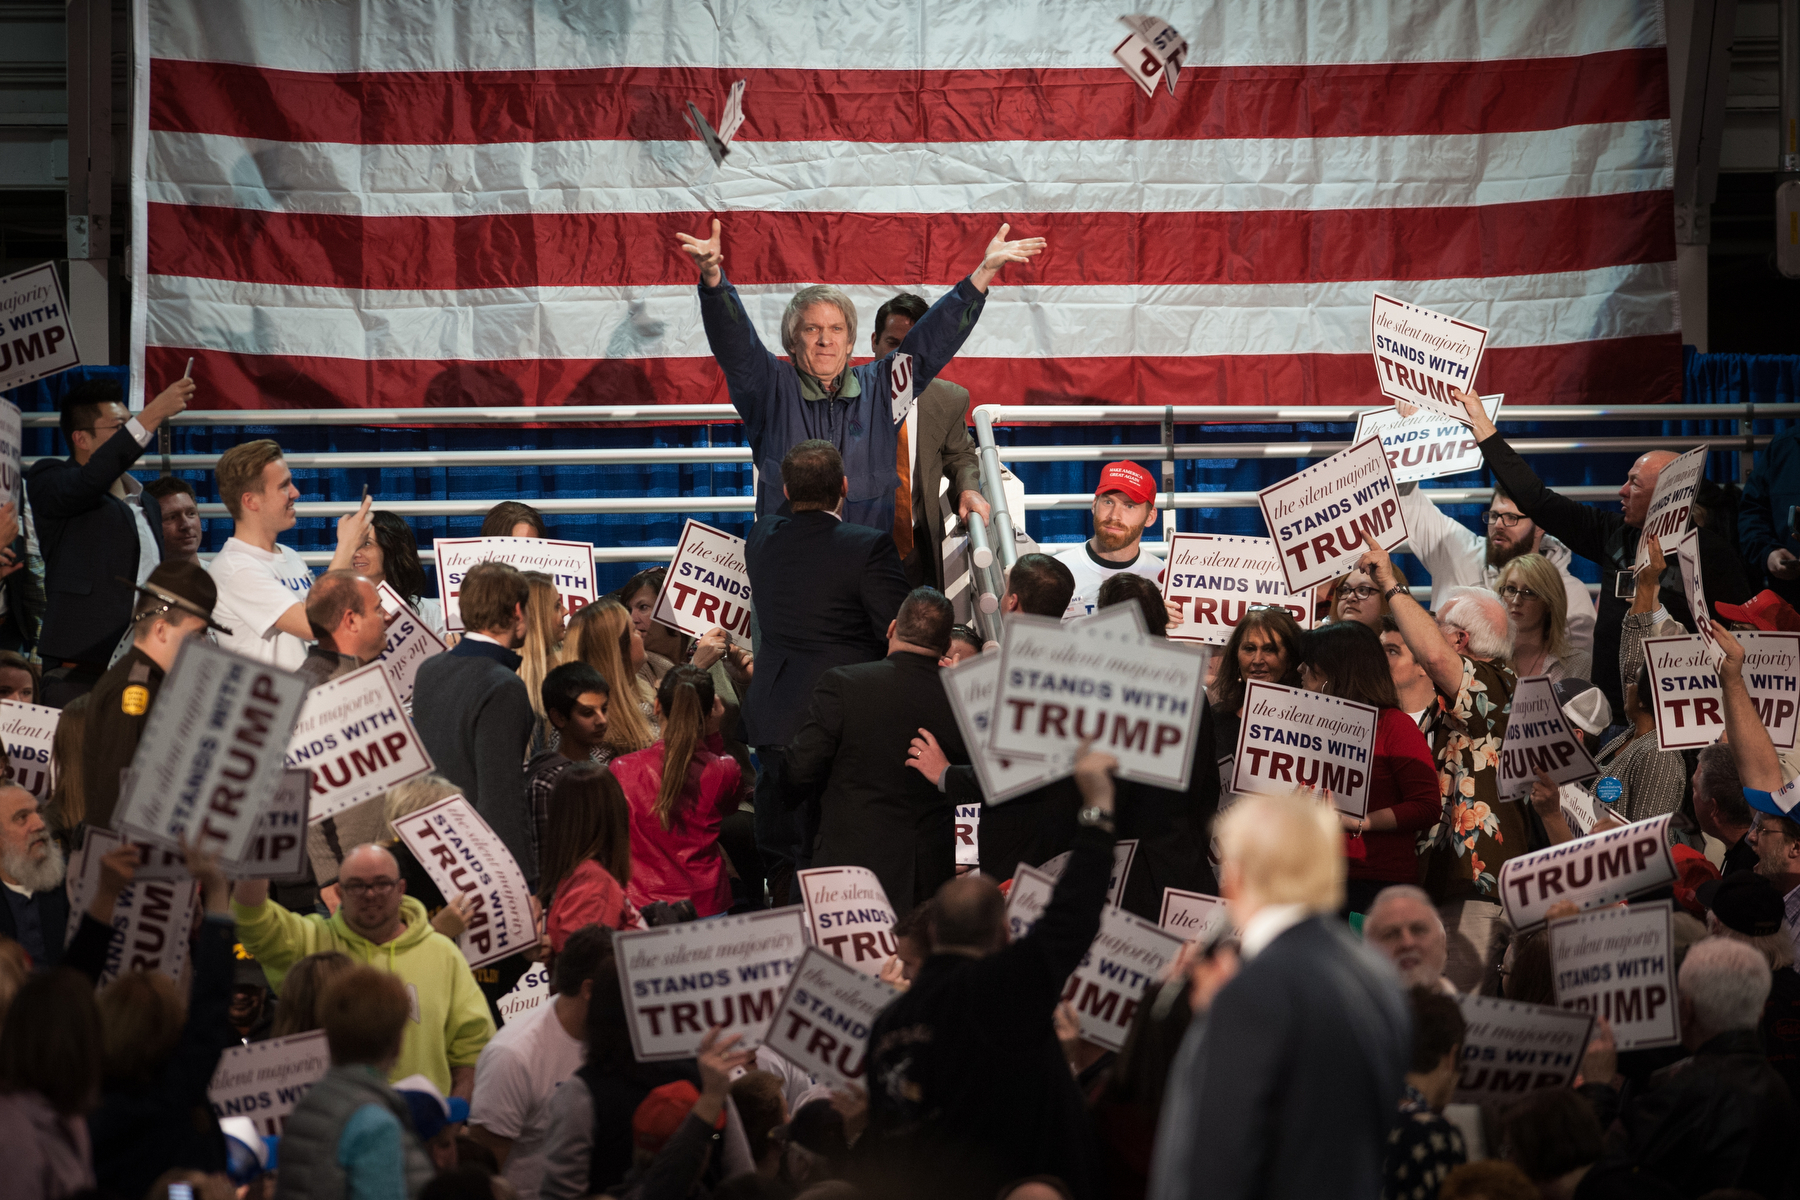 A protestor throws a ripped up campaign sign as Donald Trump, president and chief executive of Trump Organization Inc. and 2016 Republican presidential candidate, speaks during a campaign event in Des Moines, Iowa, U.S., on Friday, Dec. 11, 2015. Mark Kauzlarich/Bloomberg